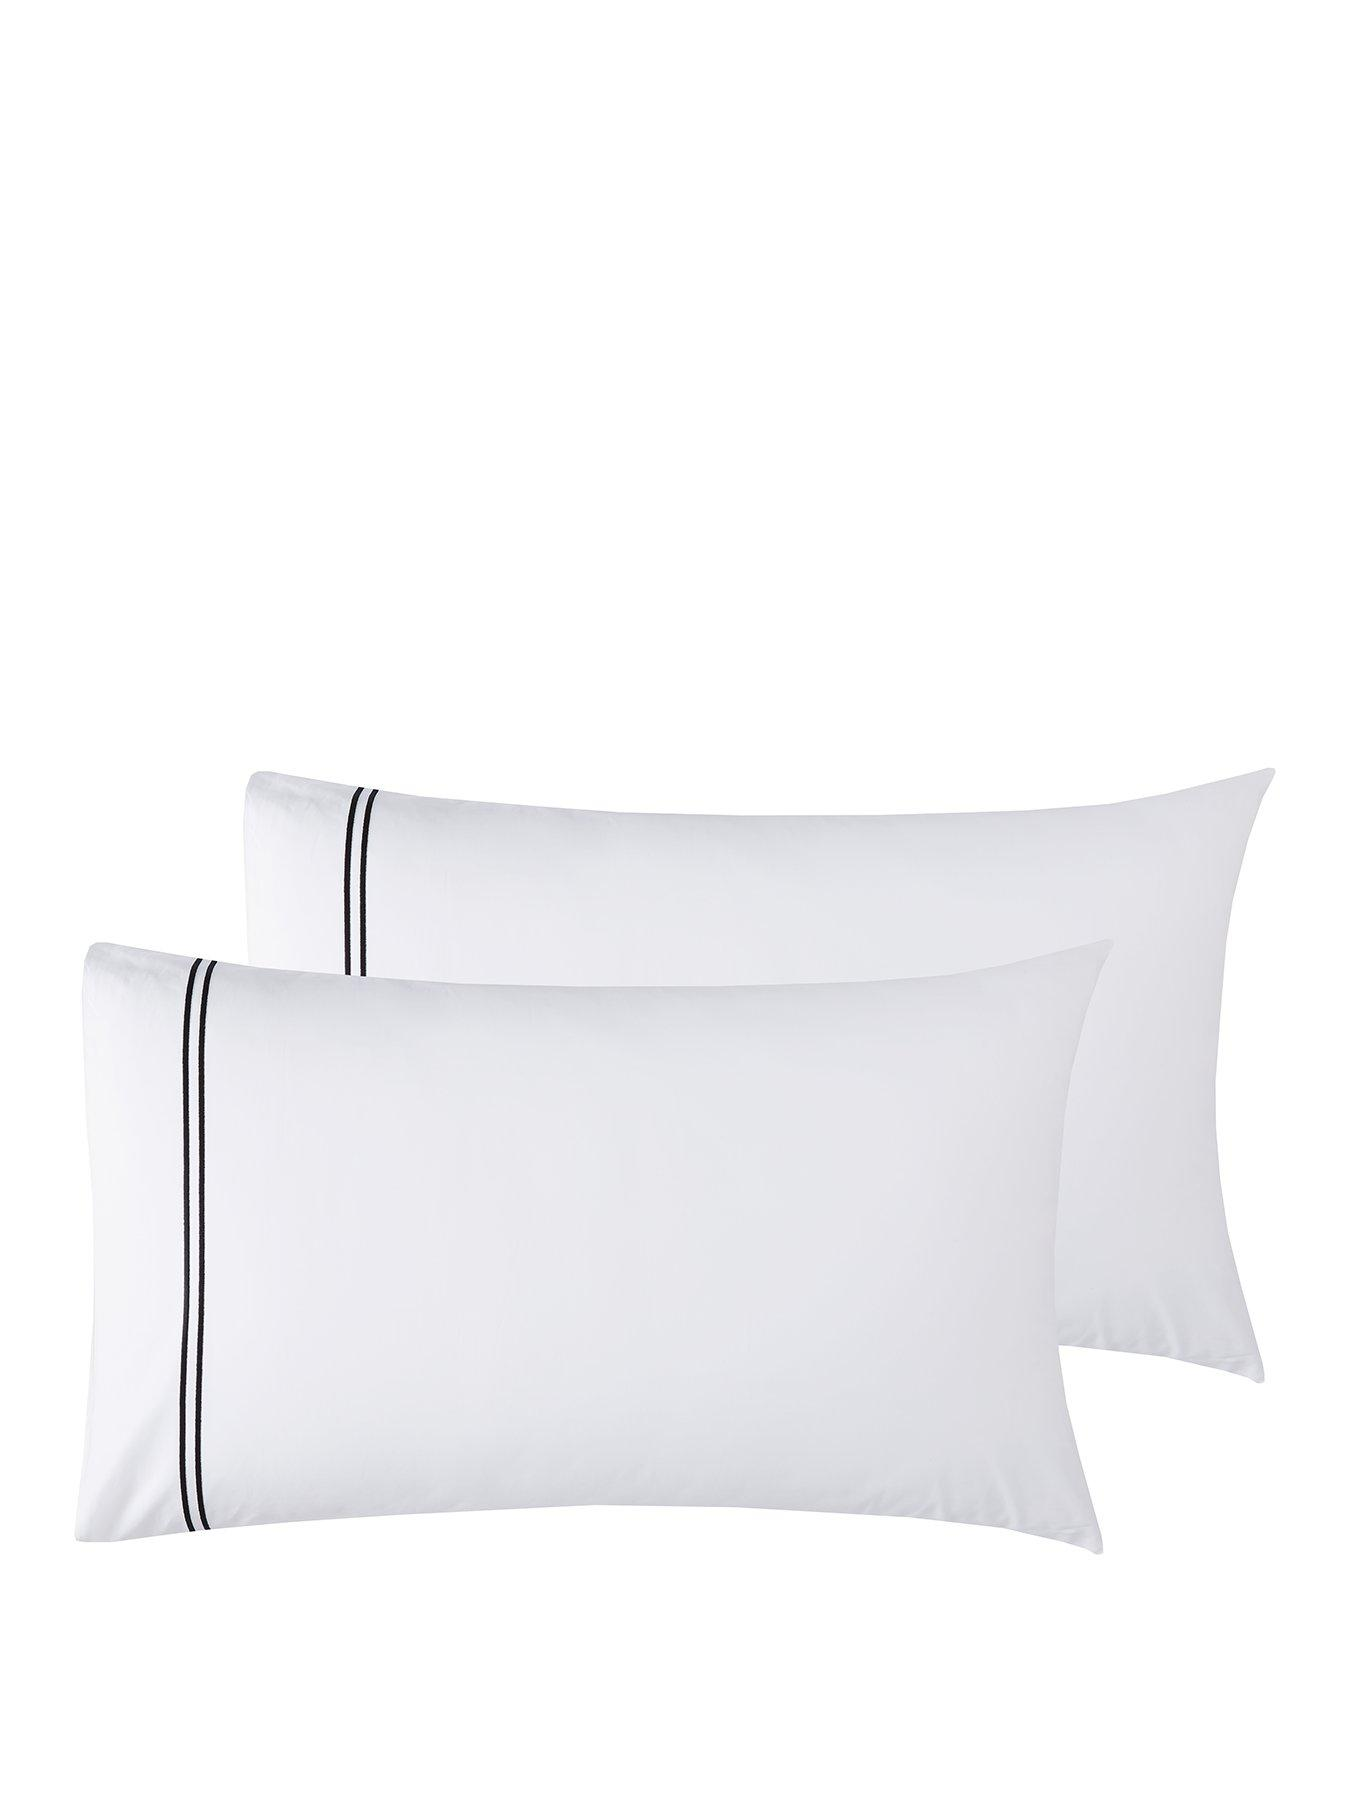 Hotel Collection 300Tc Stitching Set Of 2 Standard Pillowcases